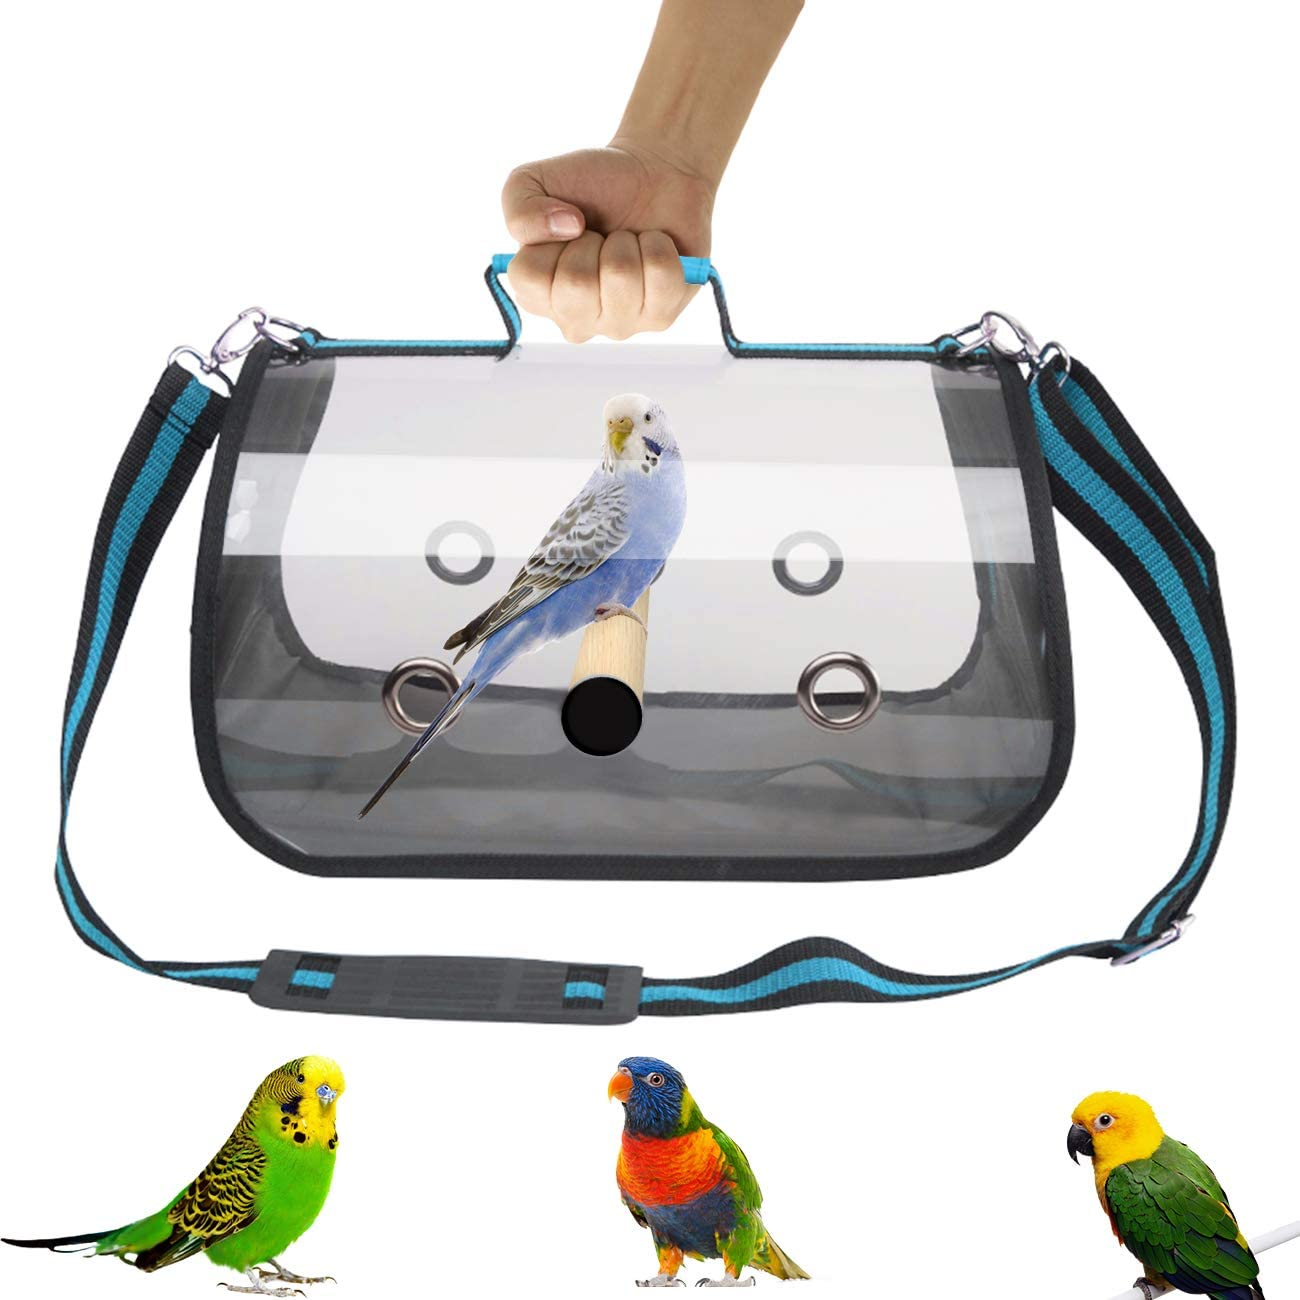 GABraden Lightweight Bird Carrier Travel Cage(Large-1 Limited time Special Campaign for free shipping